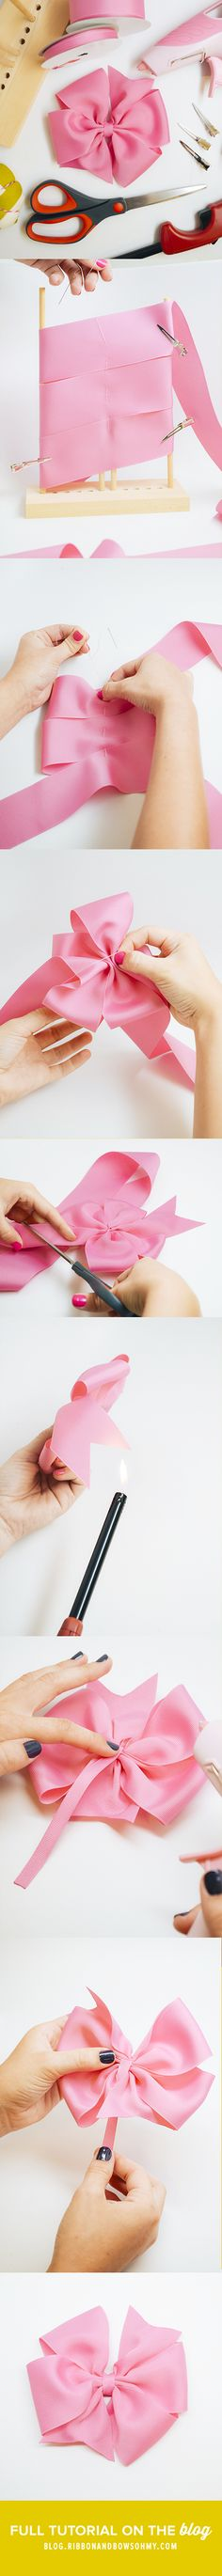 Pinwheel Bow Visual Tutorial via RABOM (blog.ribbonandbowsohmy.com)